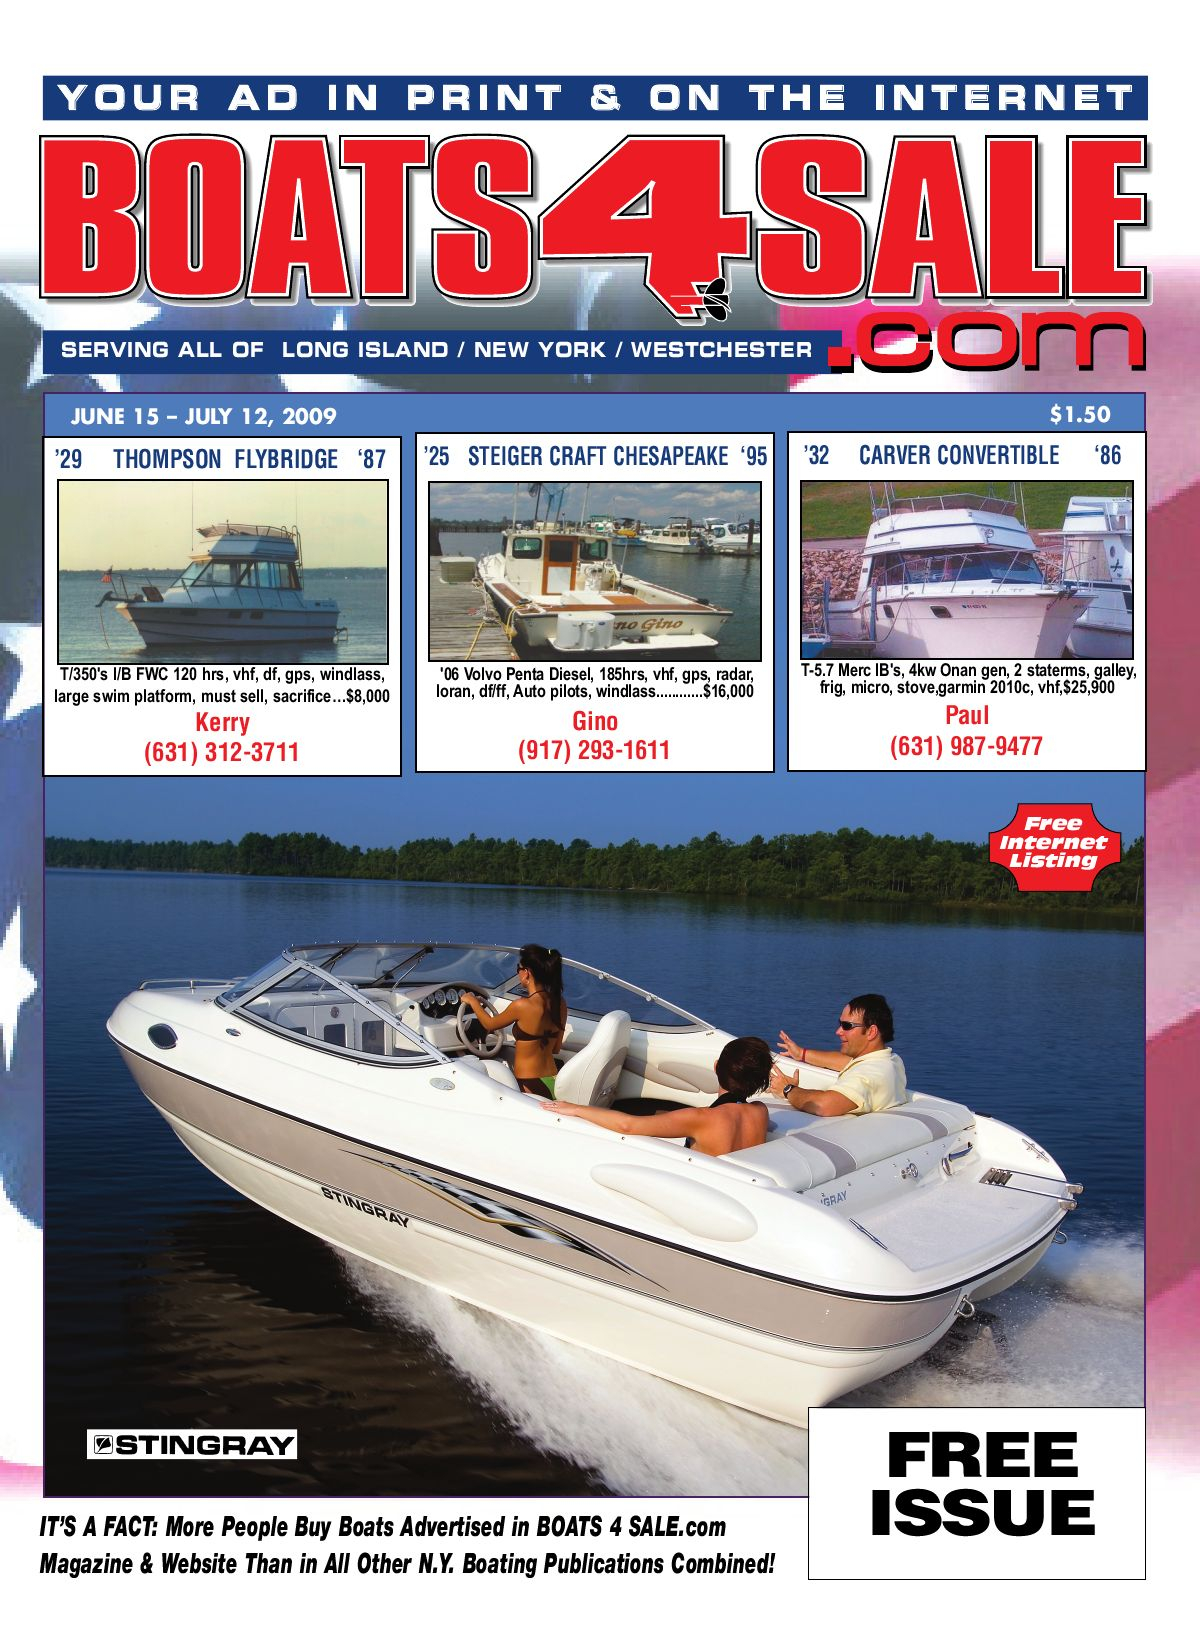 Boats4Sale June 15 - July 12, 2009 By Boats4Sale for Slps Payroll Calendar 2020-20